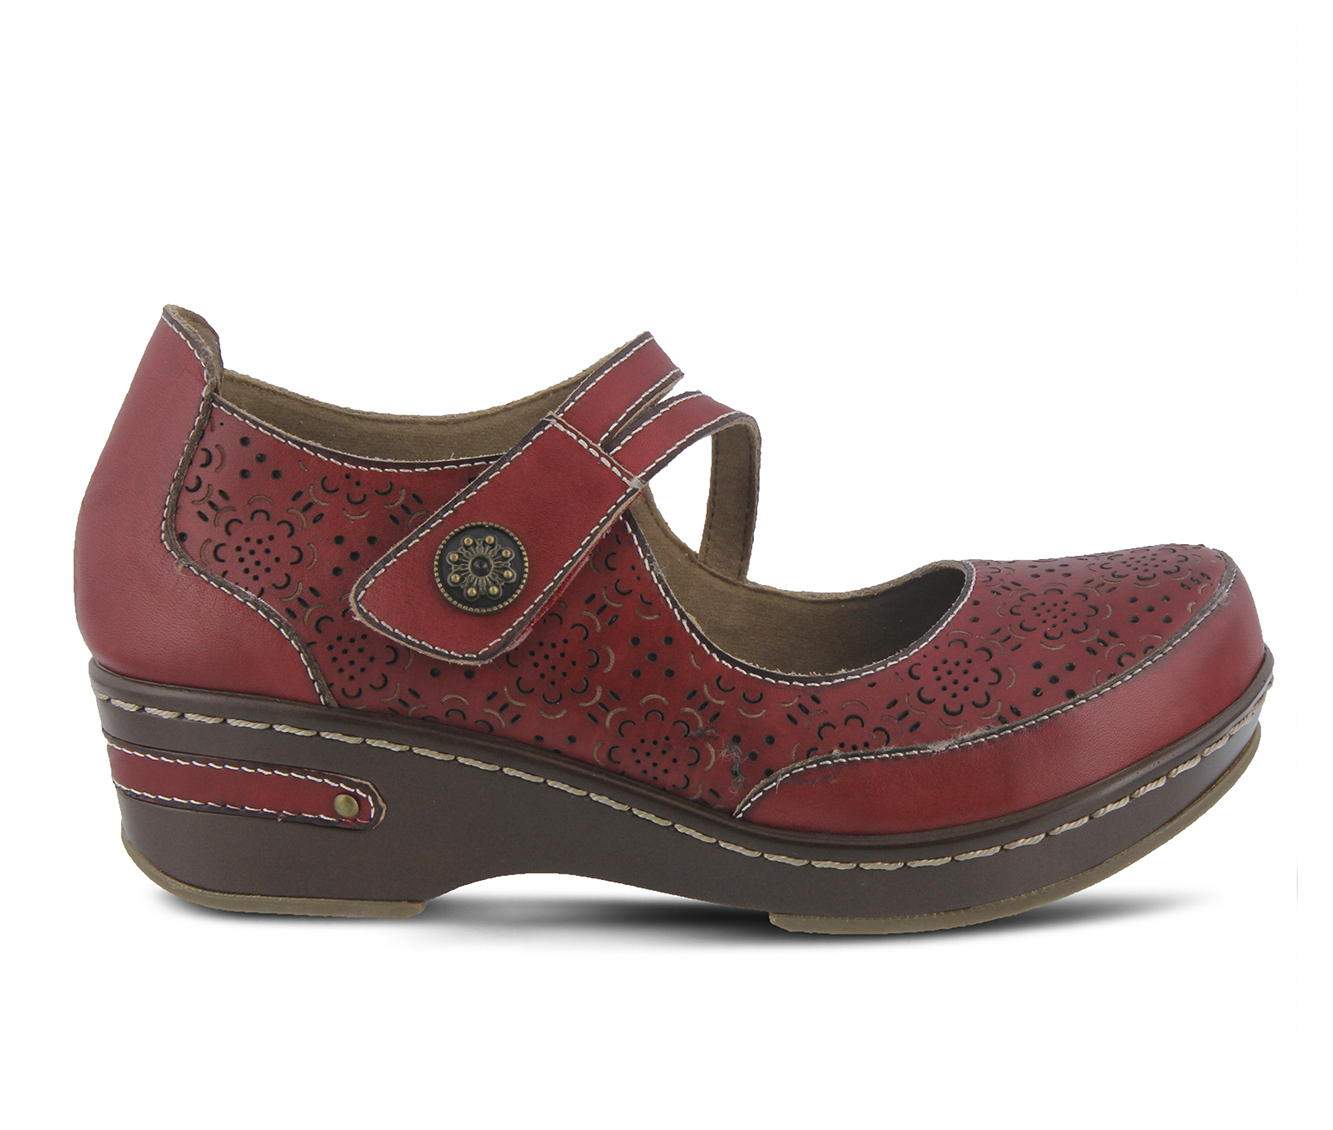 L'Artiste Mamata Women's Shoe (Red Leather)